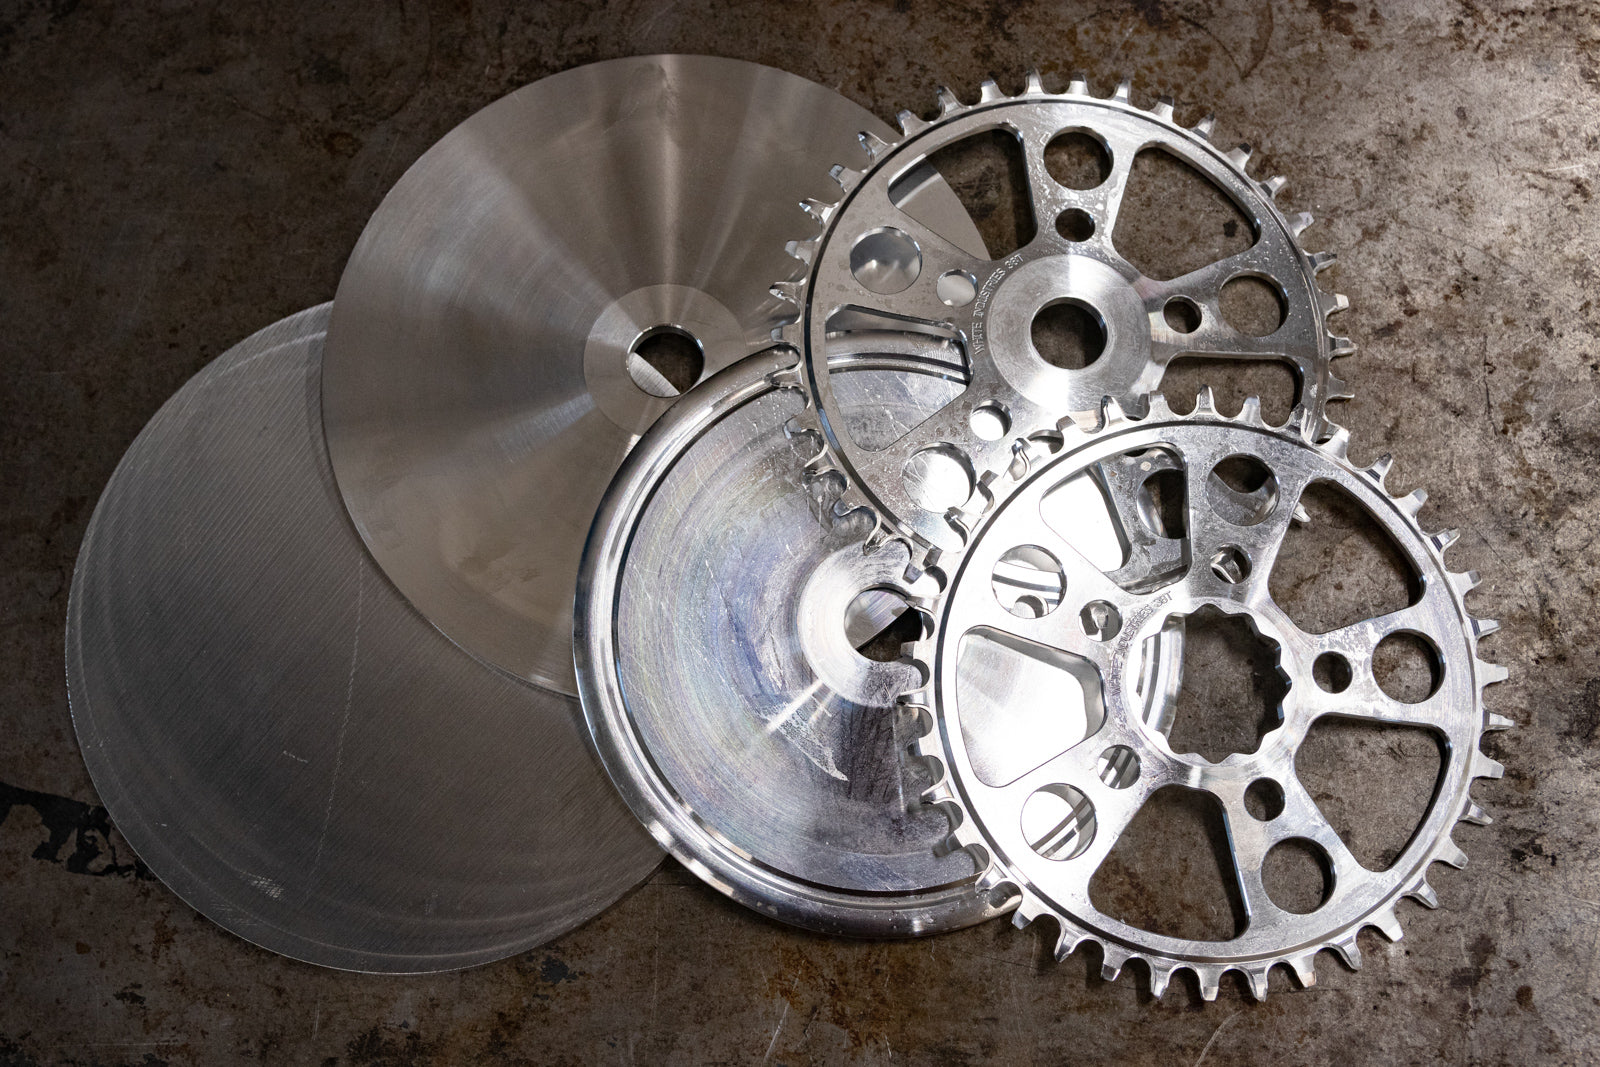 White Industries Chainrings: Made from Scratch in the USA